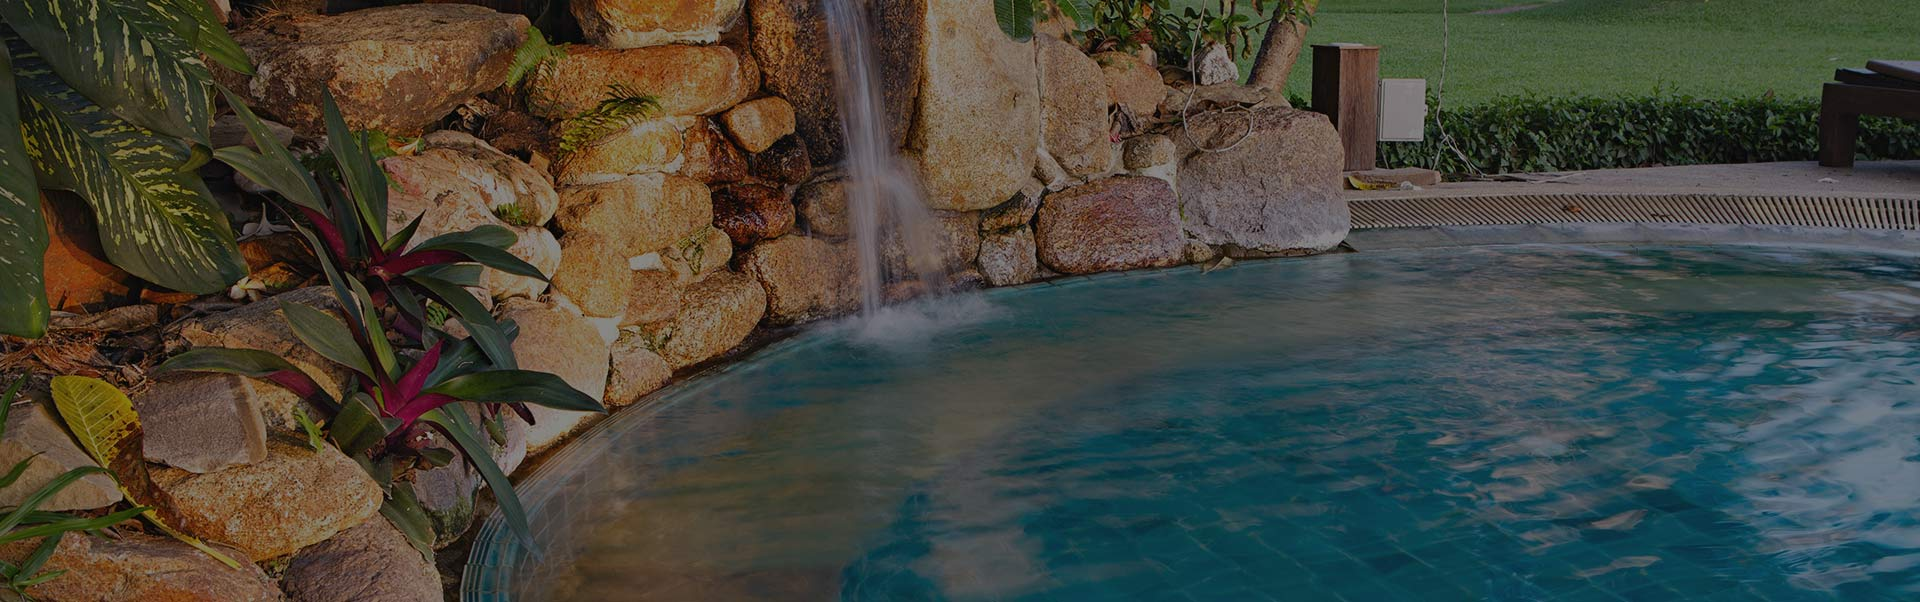 Get more online reviews about your pool designs